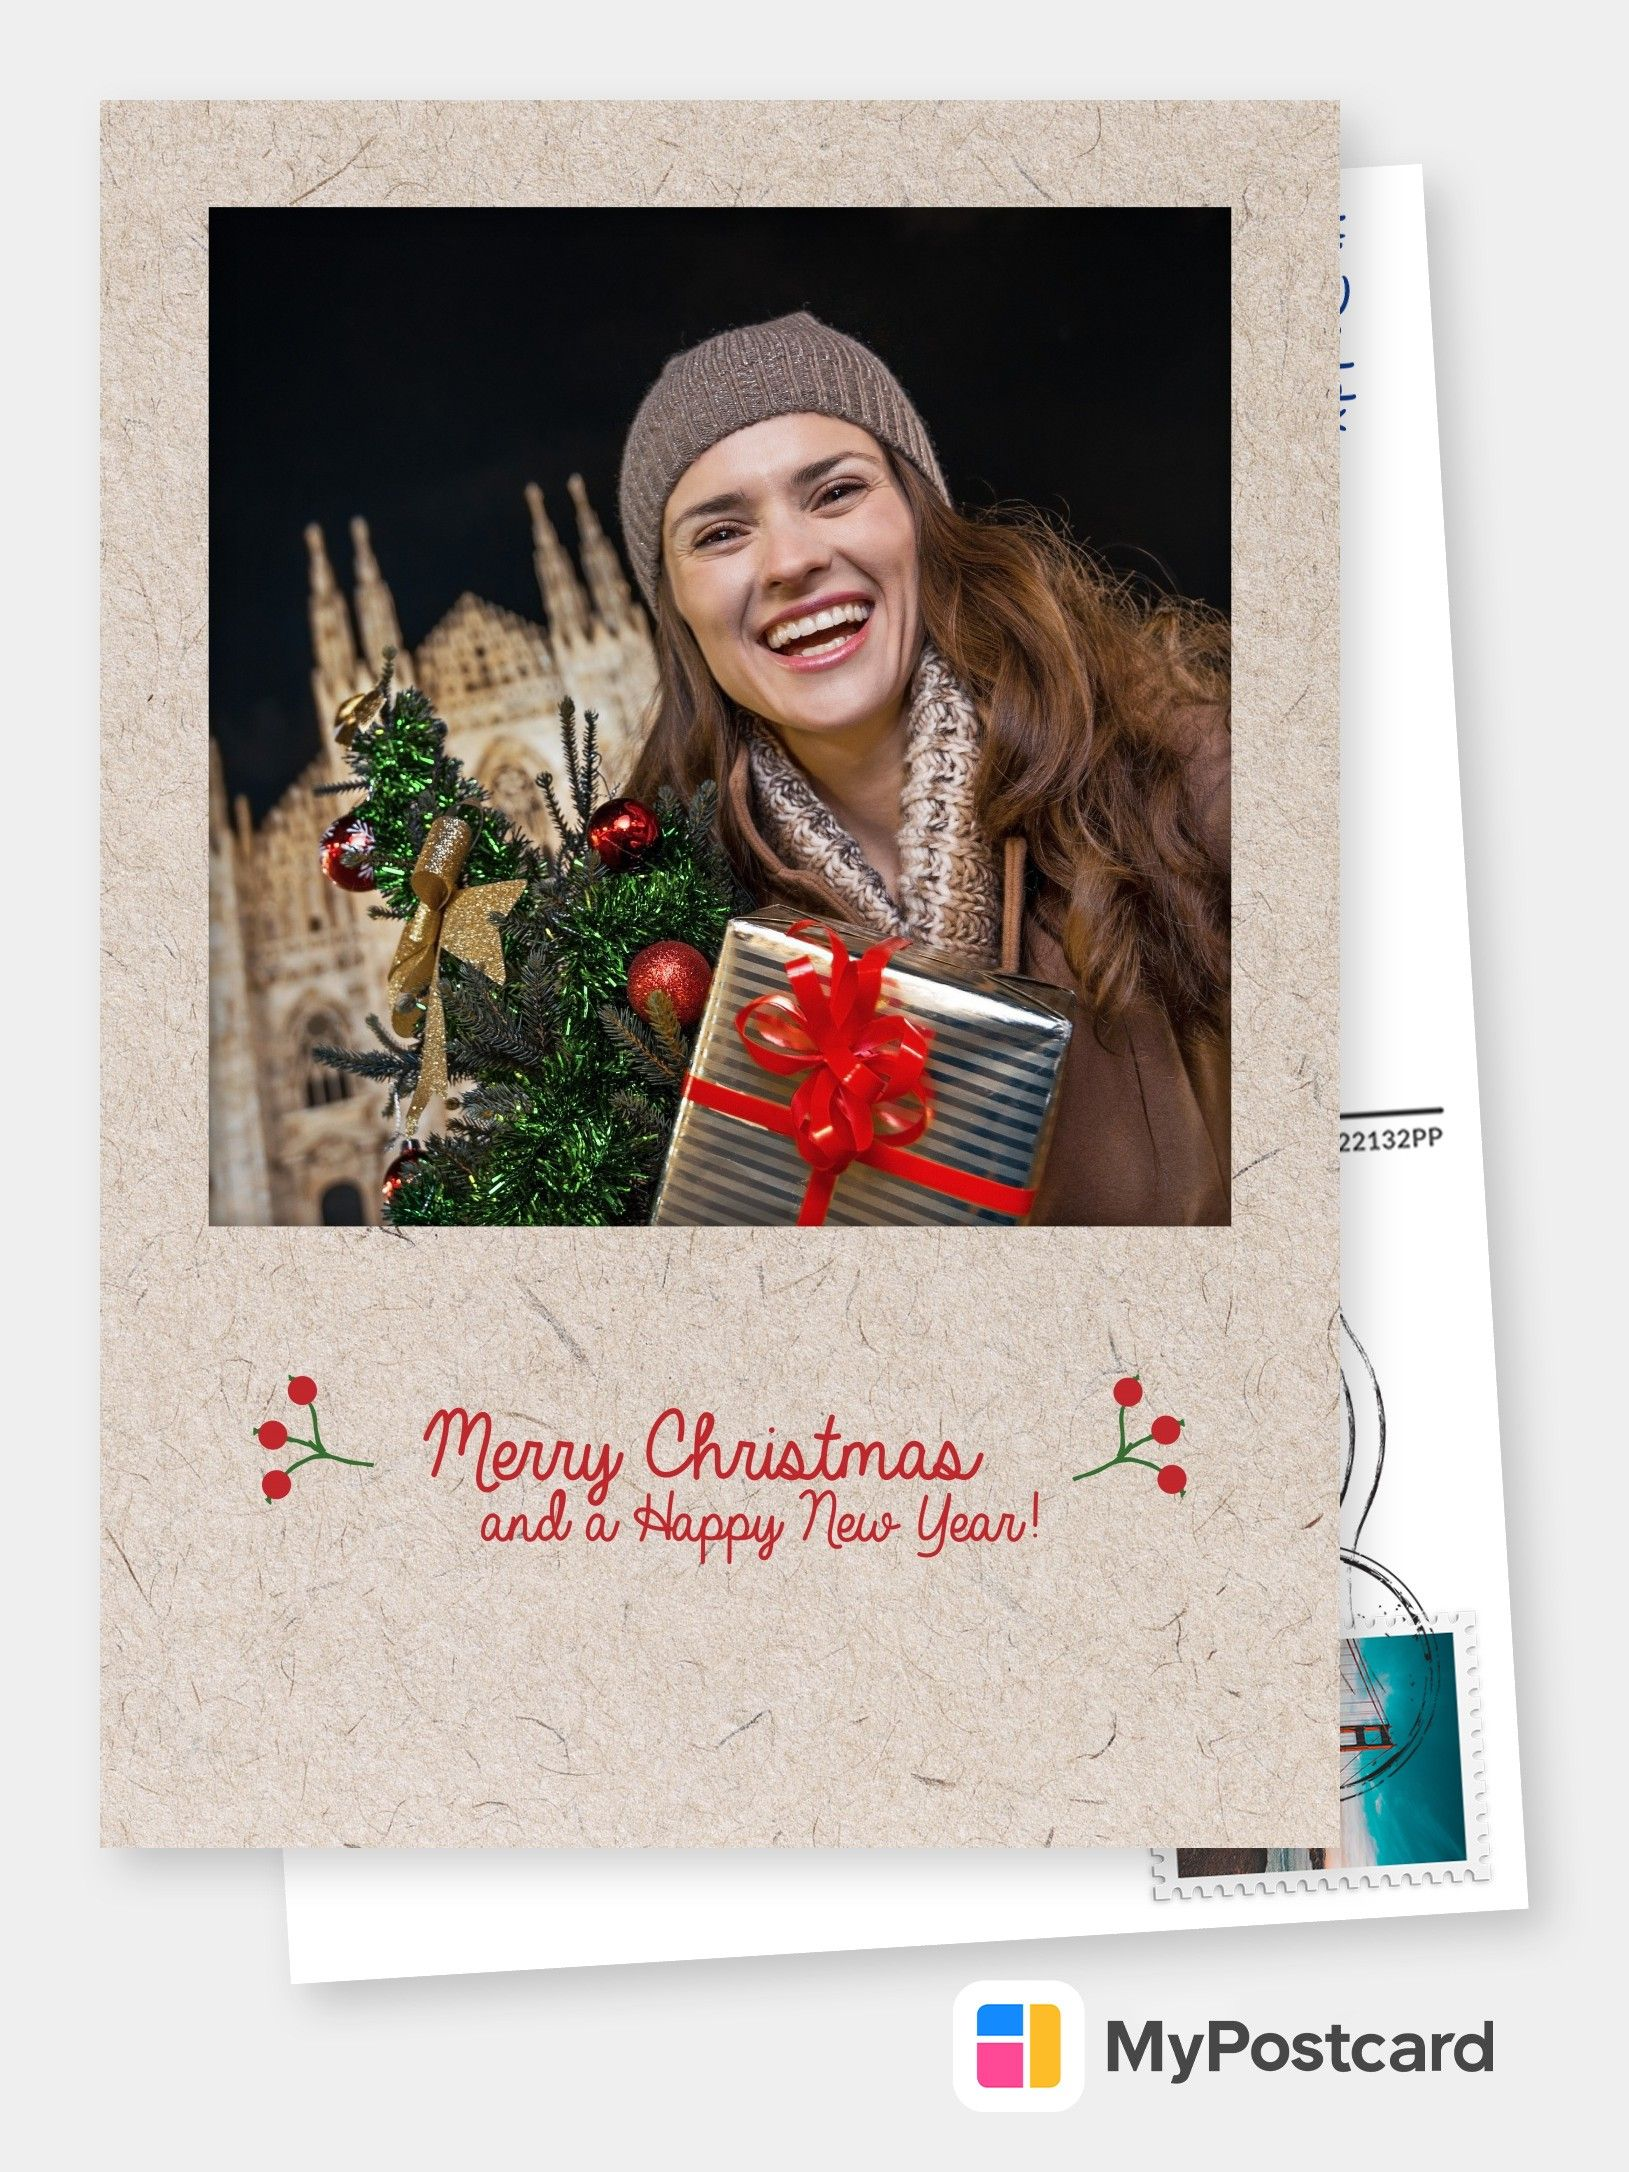 Personalized Photo Christmas Cards Free Shipping International Templates Use With Your Own Photos Create And Send Your Photo Cards Online Printed Mail Christmas Cards Free Christmas Postcard Merry Christmas Card